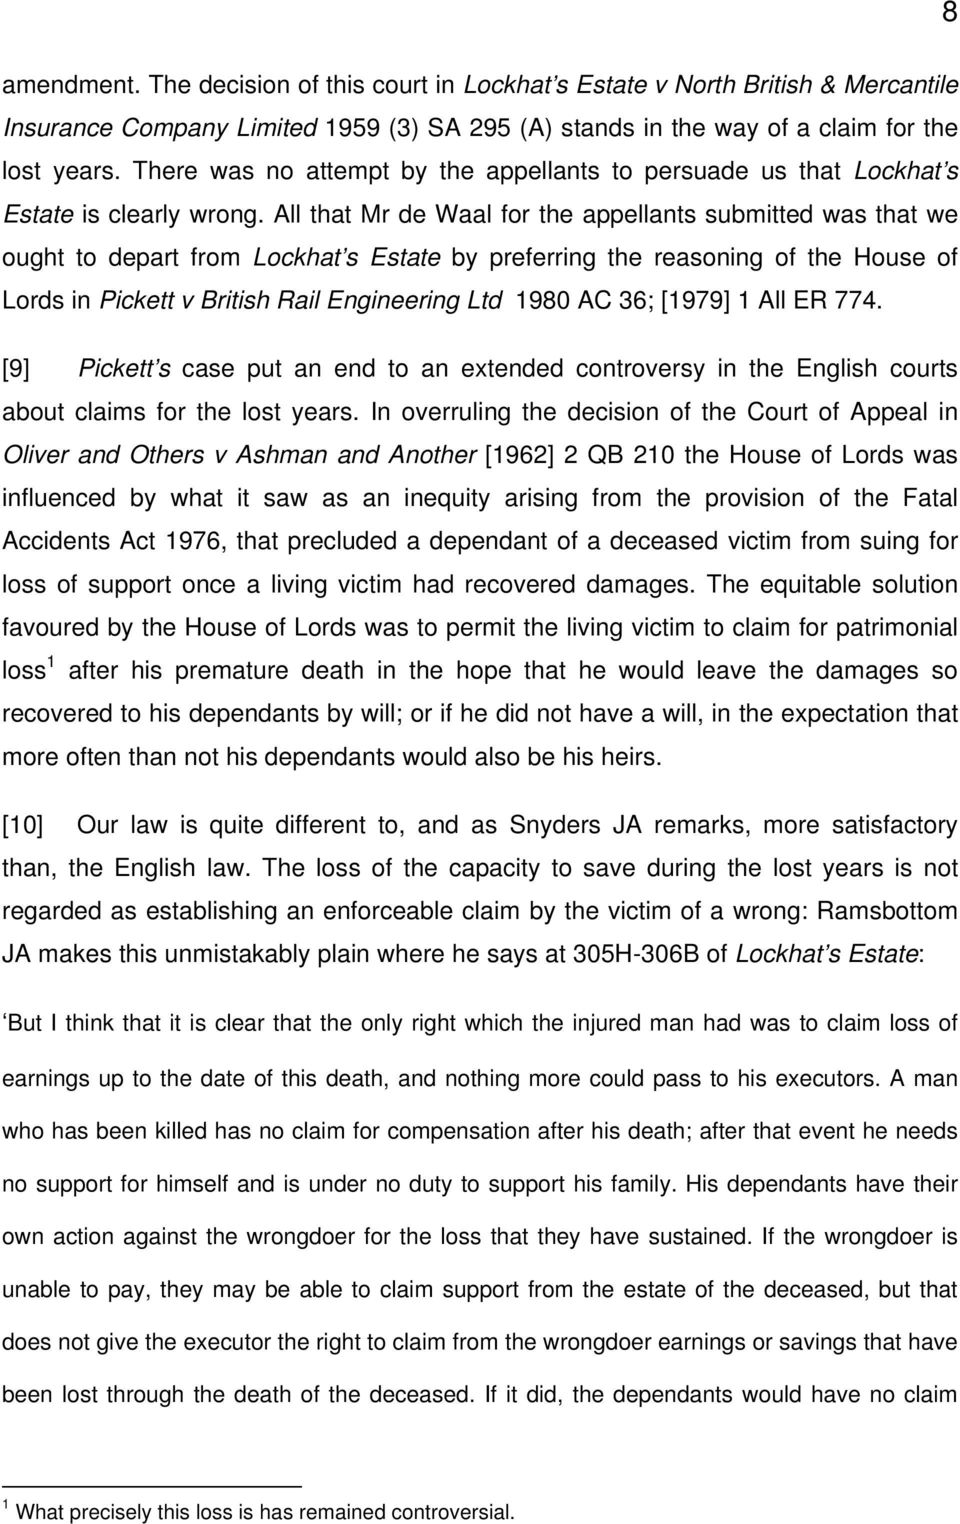 All that Mr de Waal for the appellants submitted was that we ought to depart from Lockhat s Estate by preferring the reasoning of the House of Lords in Pickett v British Rail Engineering Ltd 1980 AC